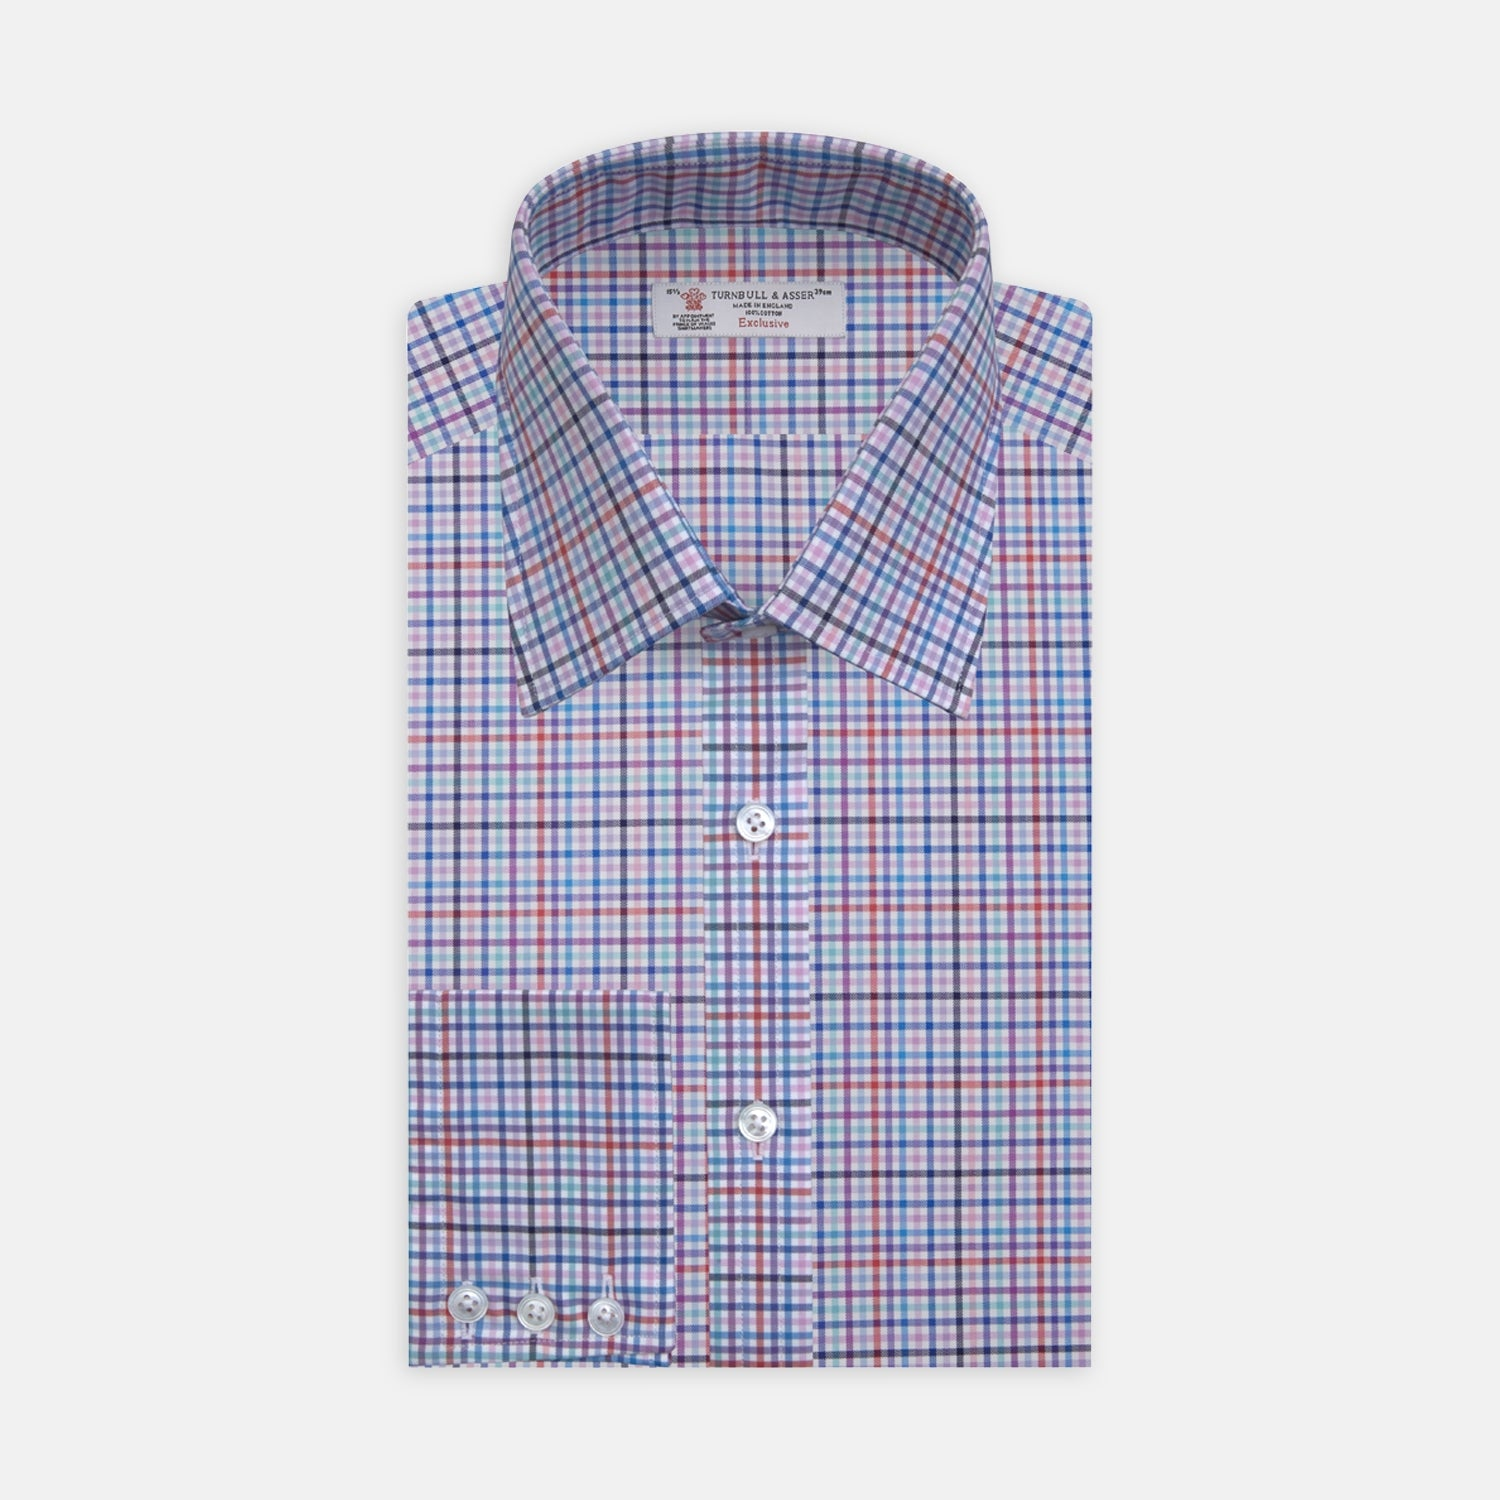 Blue, Pink and Red Graph Check Shirt with T&A Collar and 3-Button Cuffs - 17.0 from Turnbull & Asser